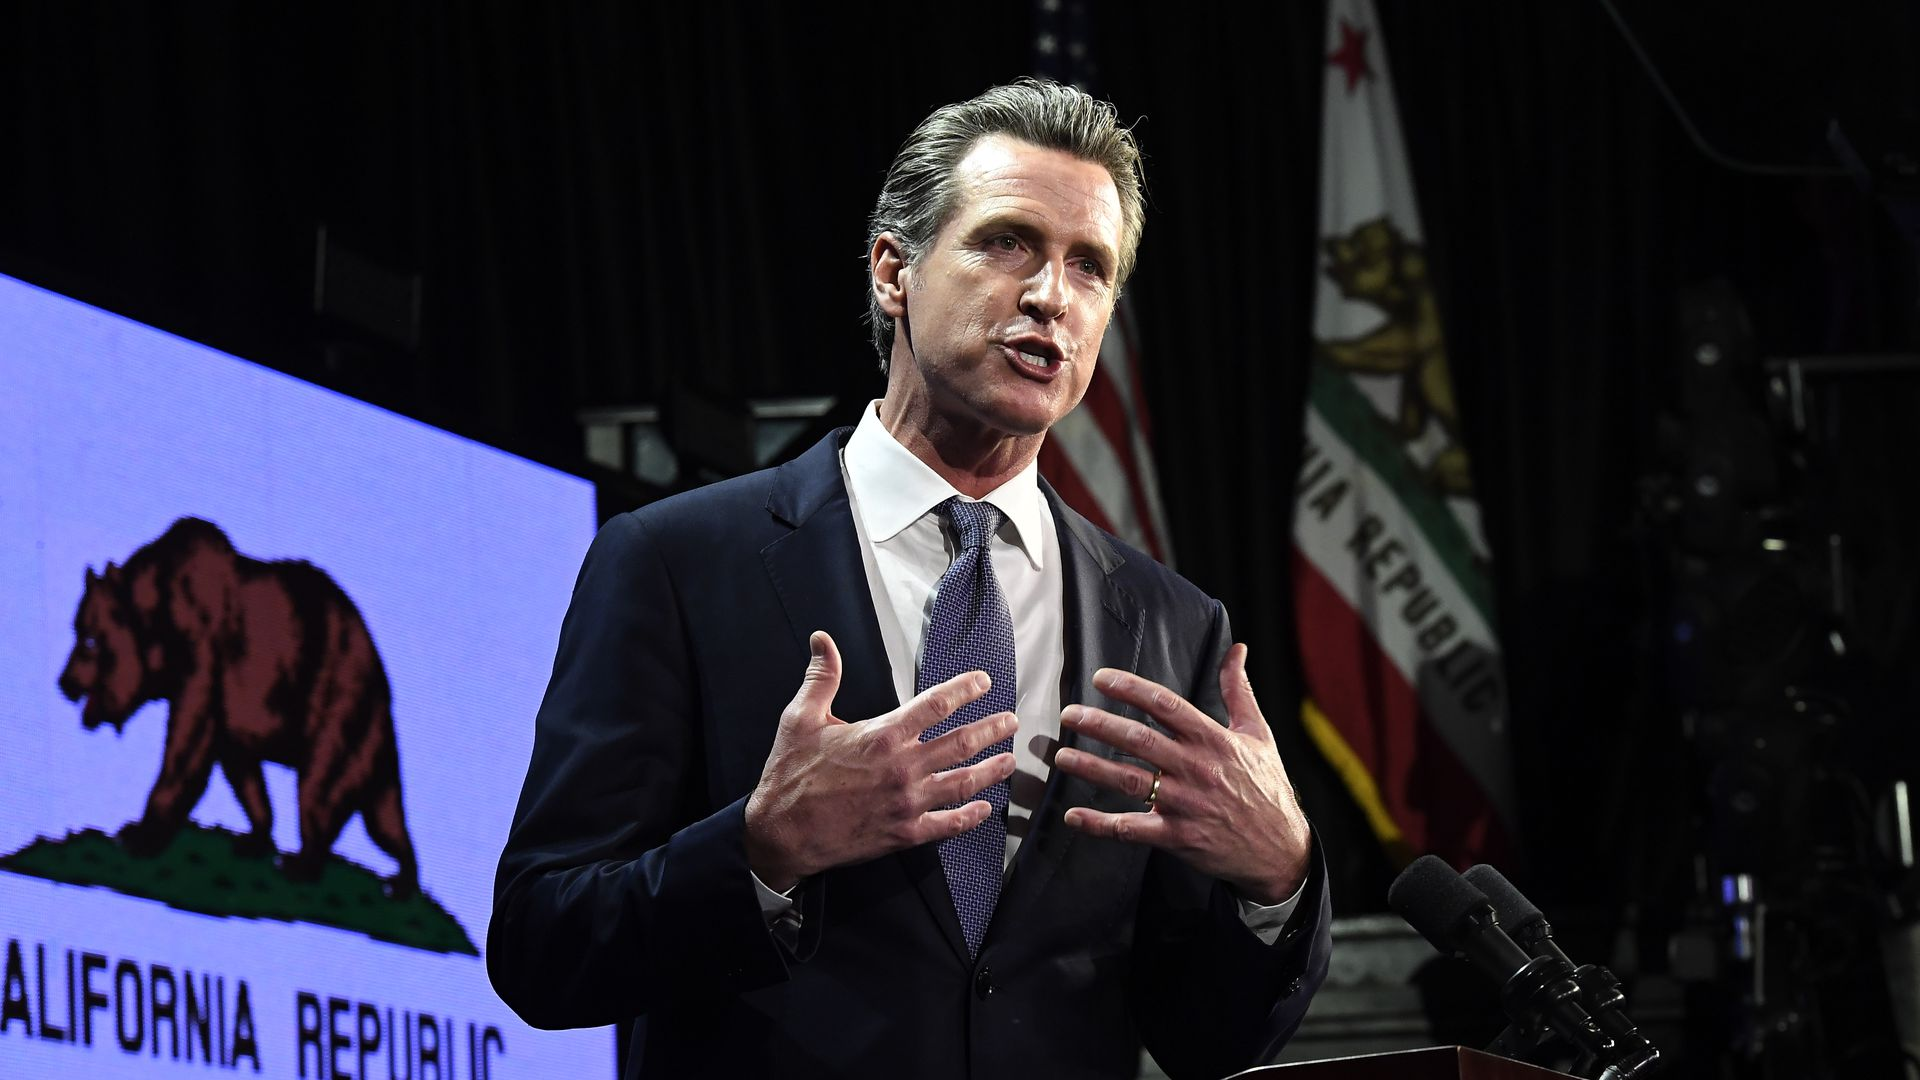 California Gov. Gavin Newsom says the death penalty is discriminatory and immoral.